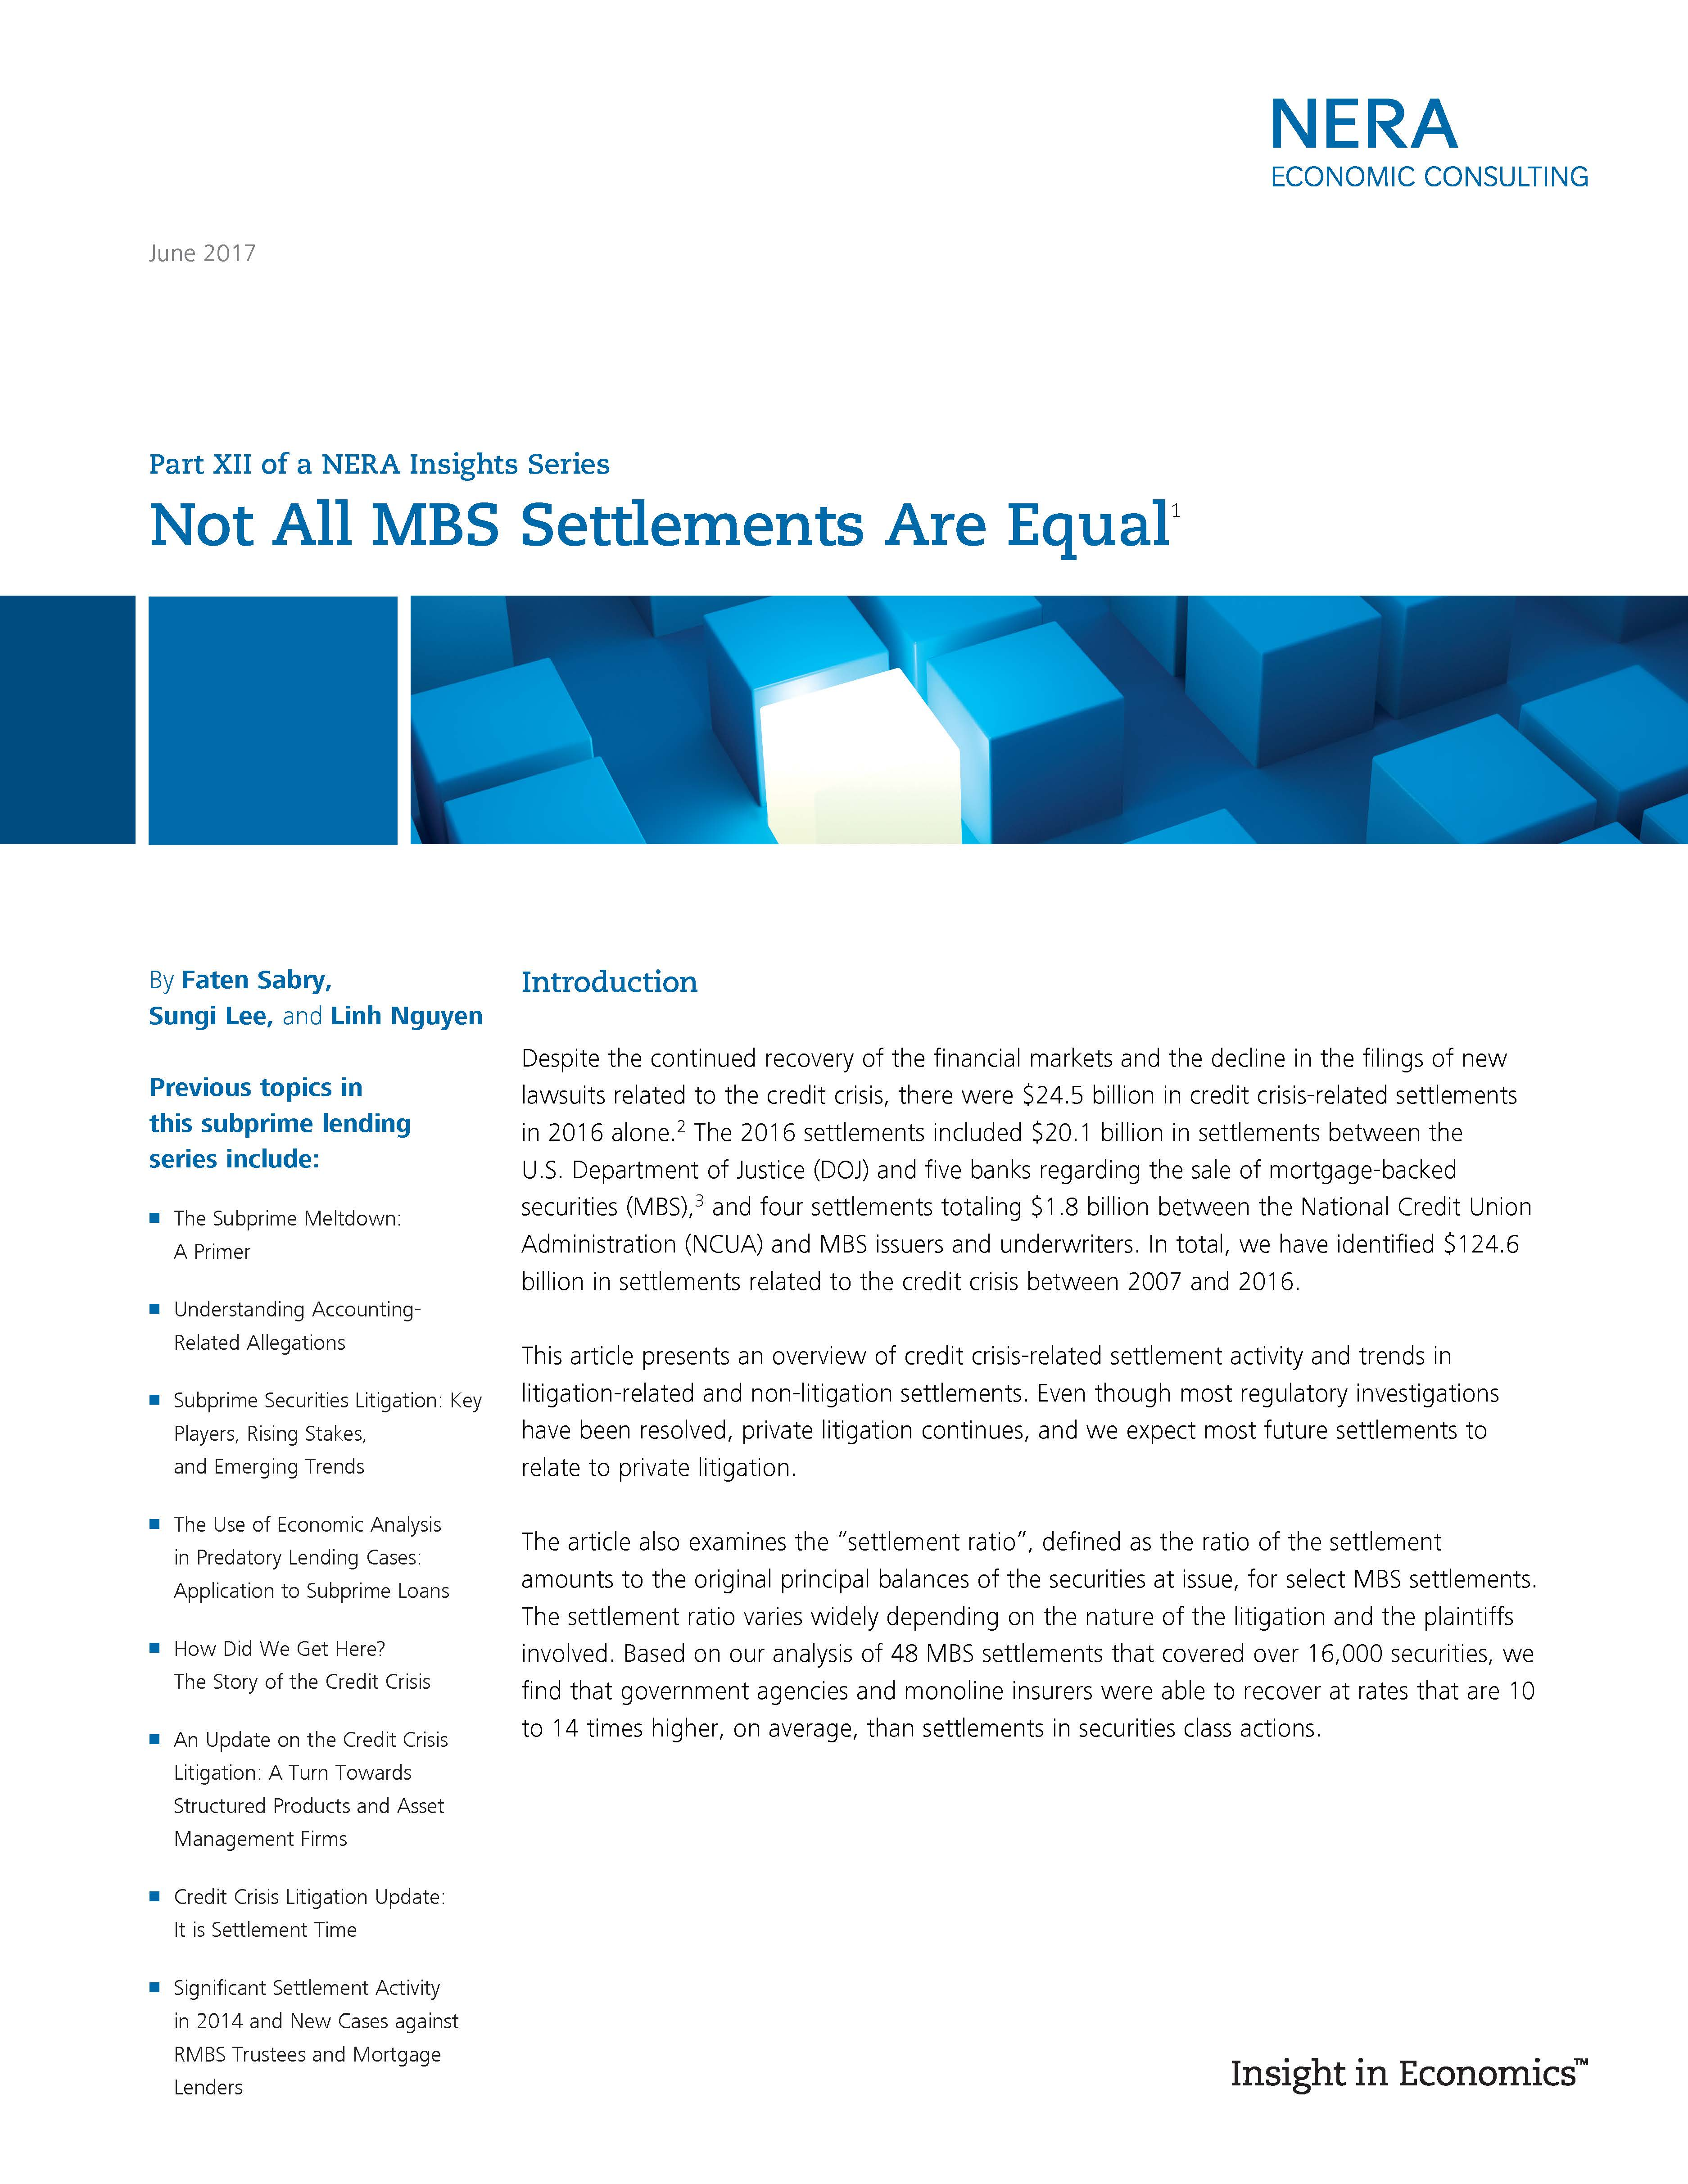 Not All MBS Settlements Are Equal